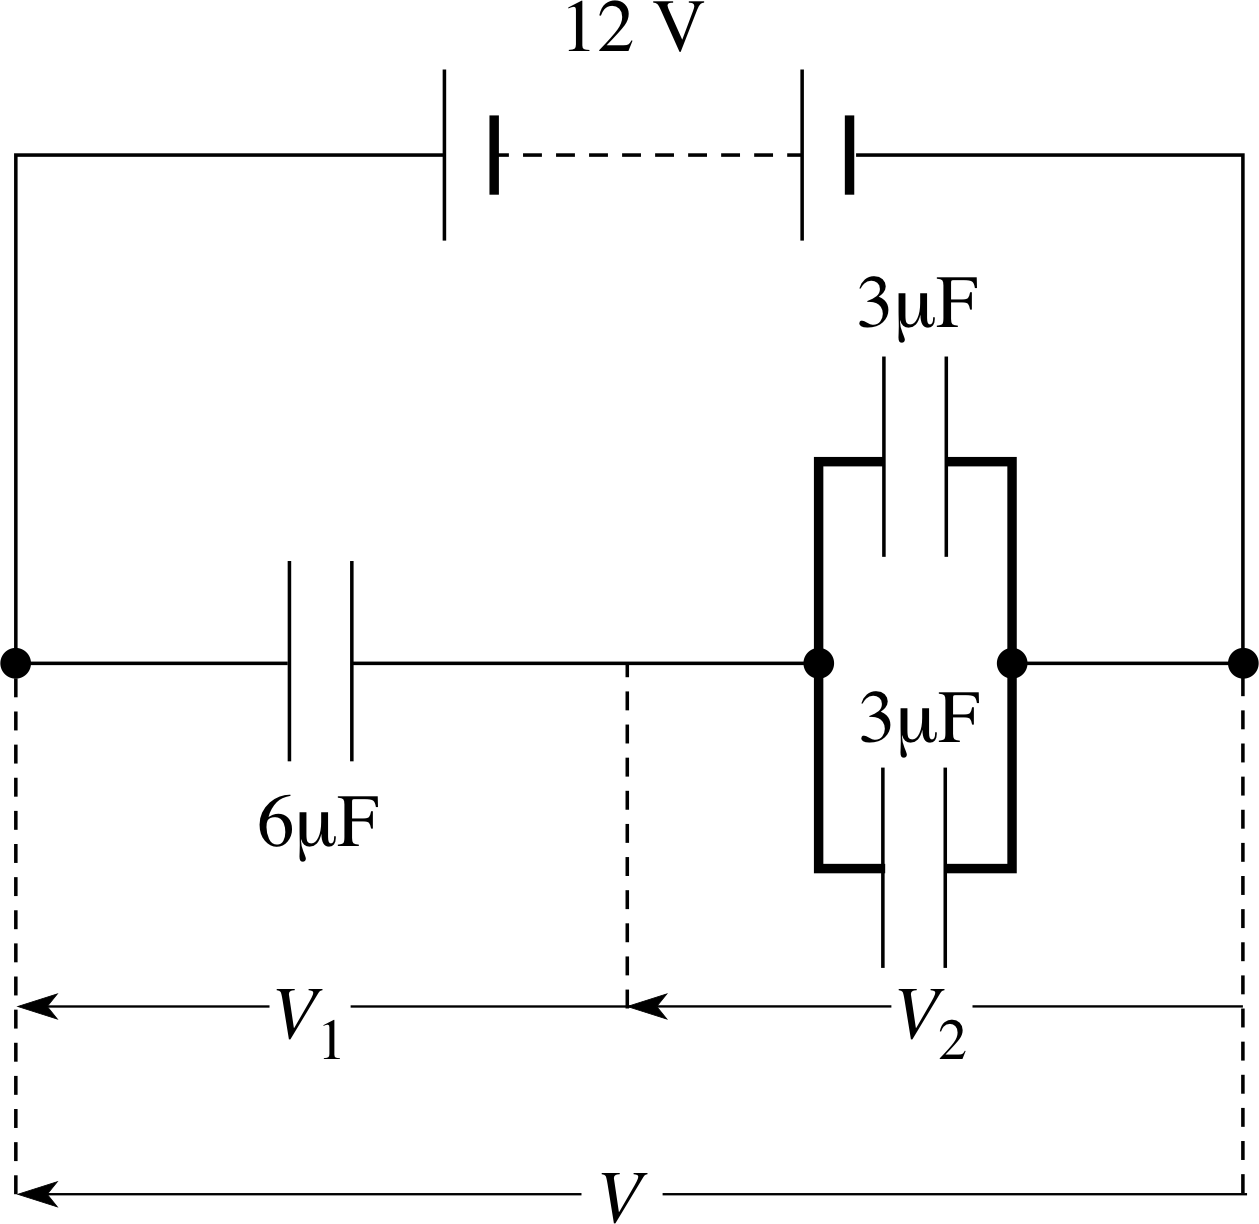 Pplato Flap Phys 45 Energy In Electric And Magnetic Fields Diagram Of Leclanche Dry Cell Battery Figure